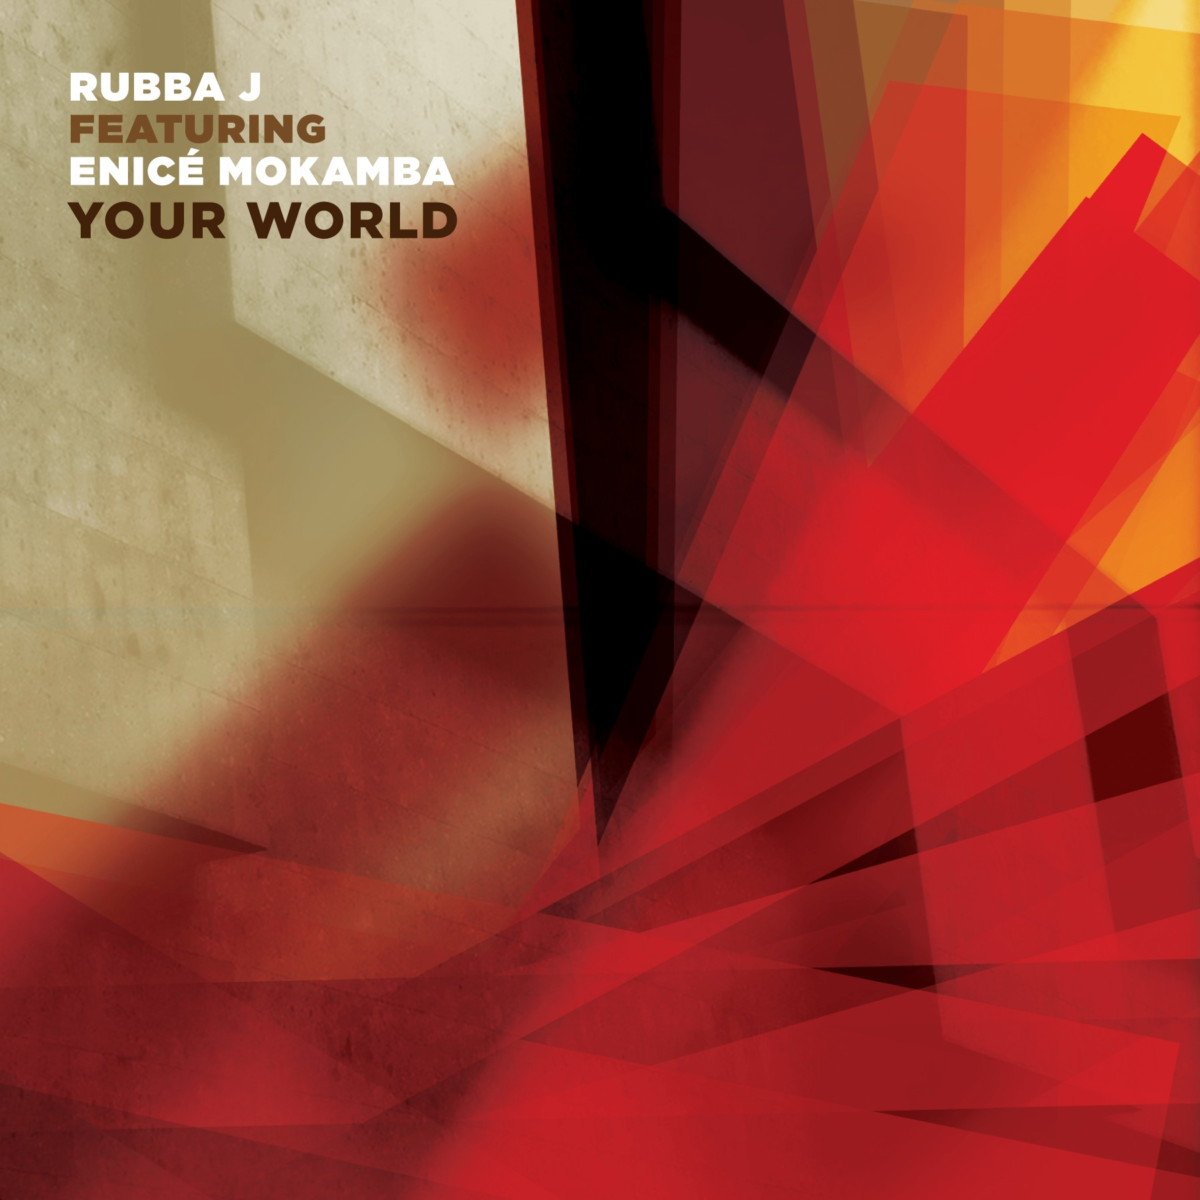 VIZ015 Rubba J feat. Enicé Mokamba - Your World